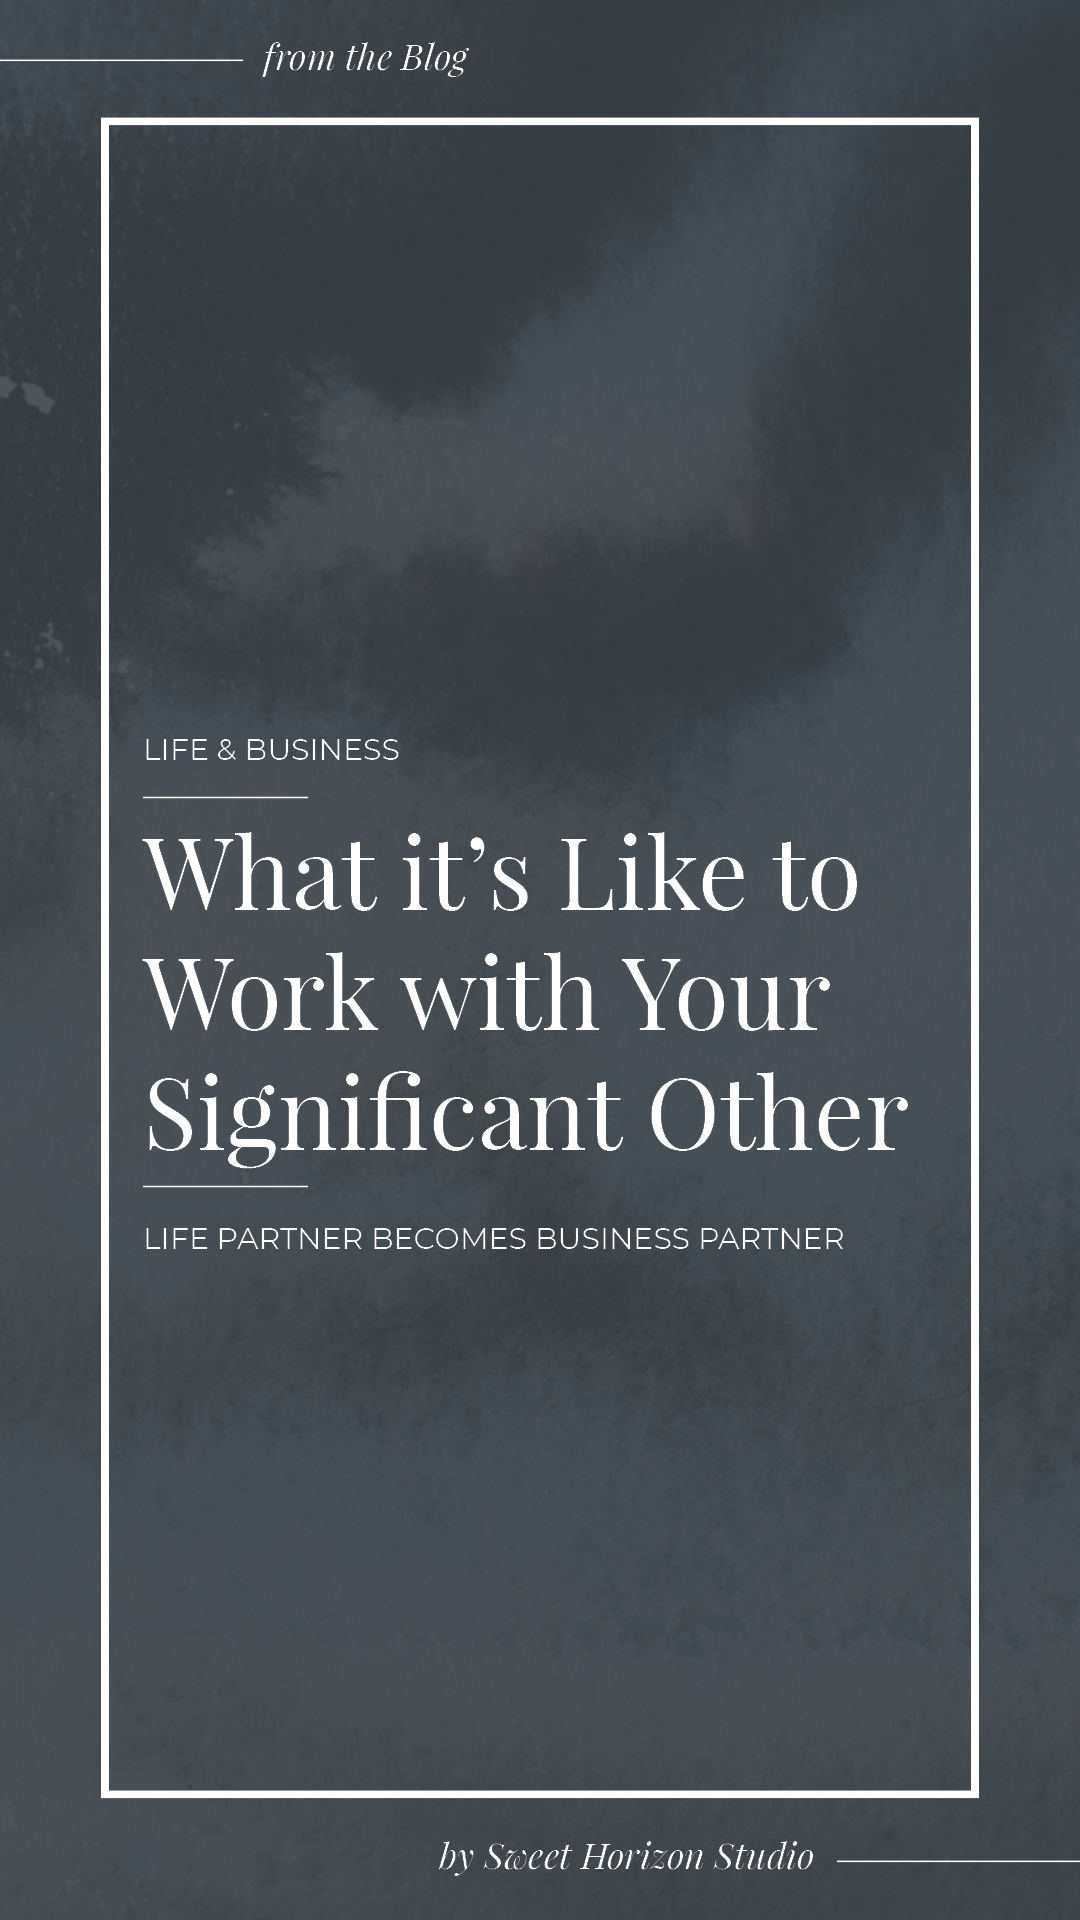 What it's Like to Work with Your Significant Other from www.sweethorizonblog.com